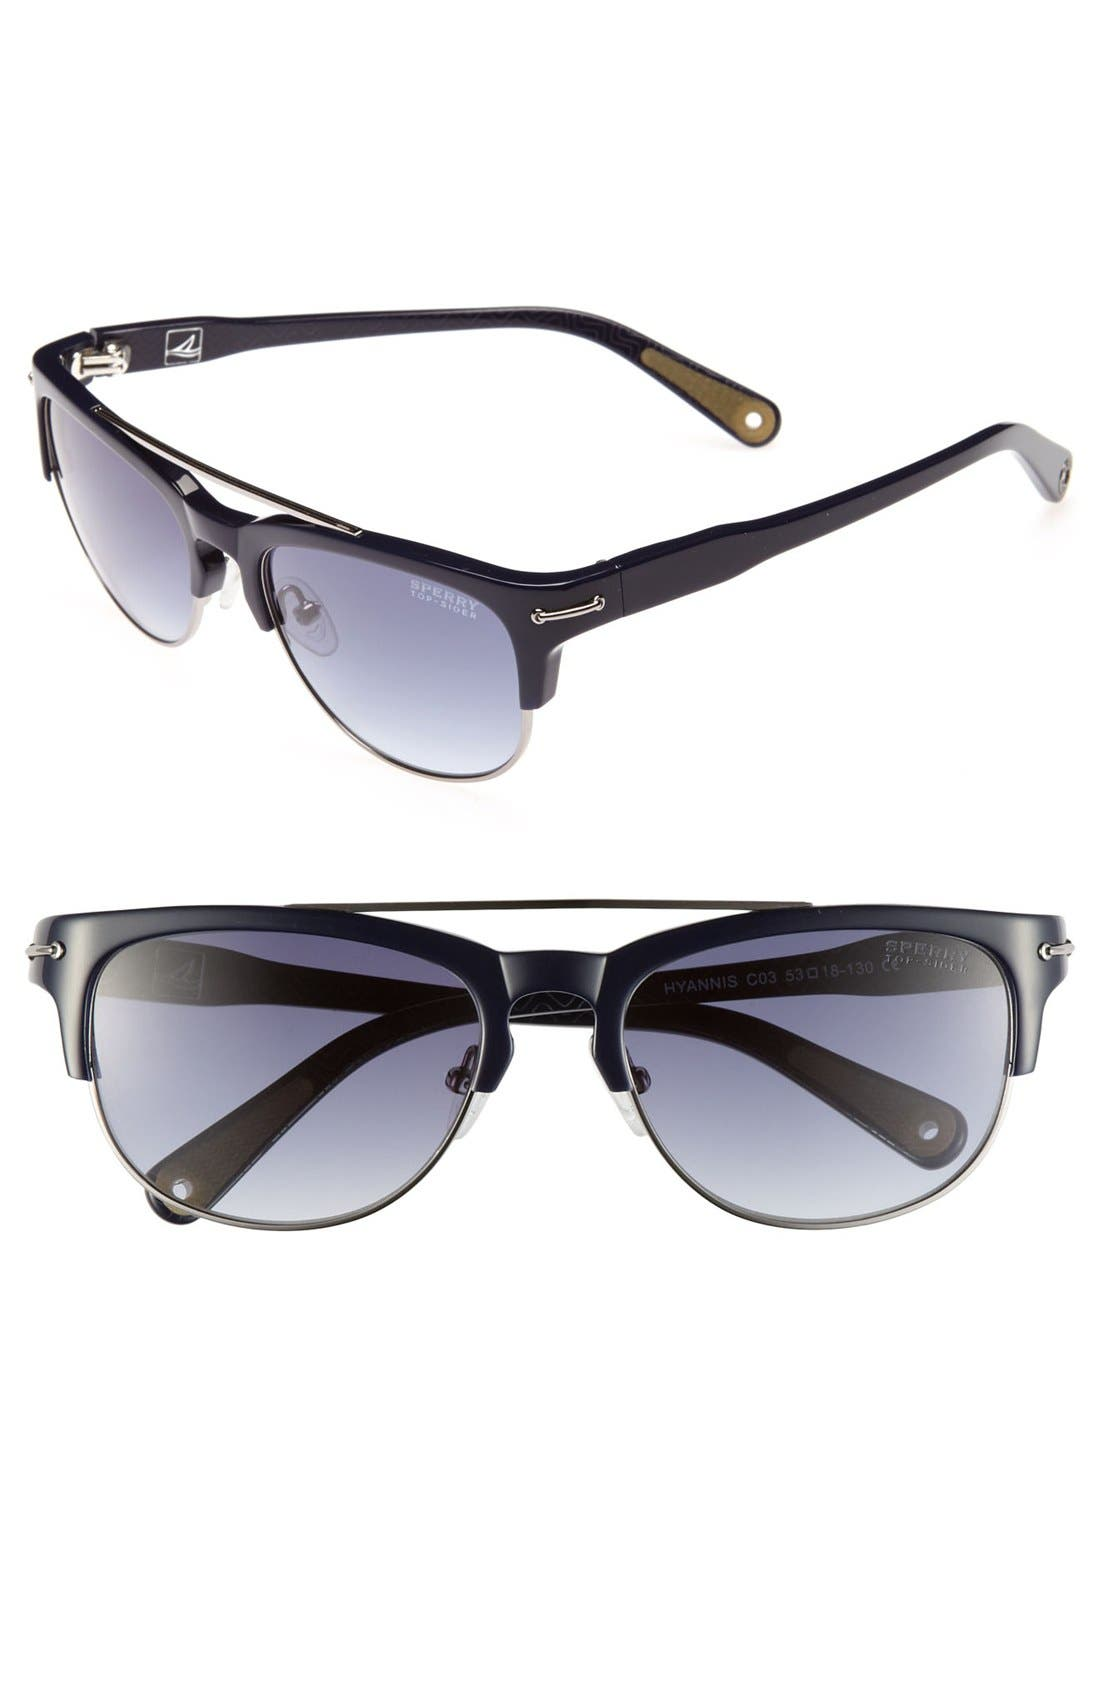 Alternate Image 1 Selected - Sperry Top-Sider® 'Hyannis' 53mm Sunglasses (Online Only)